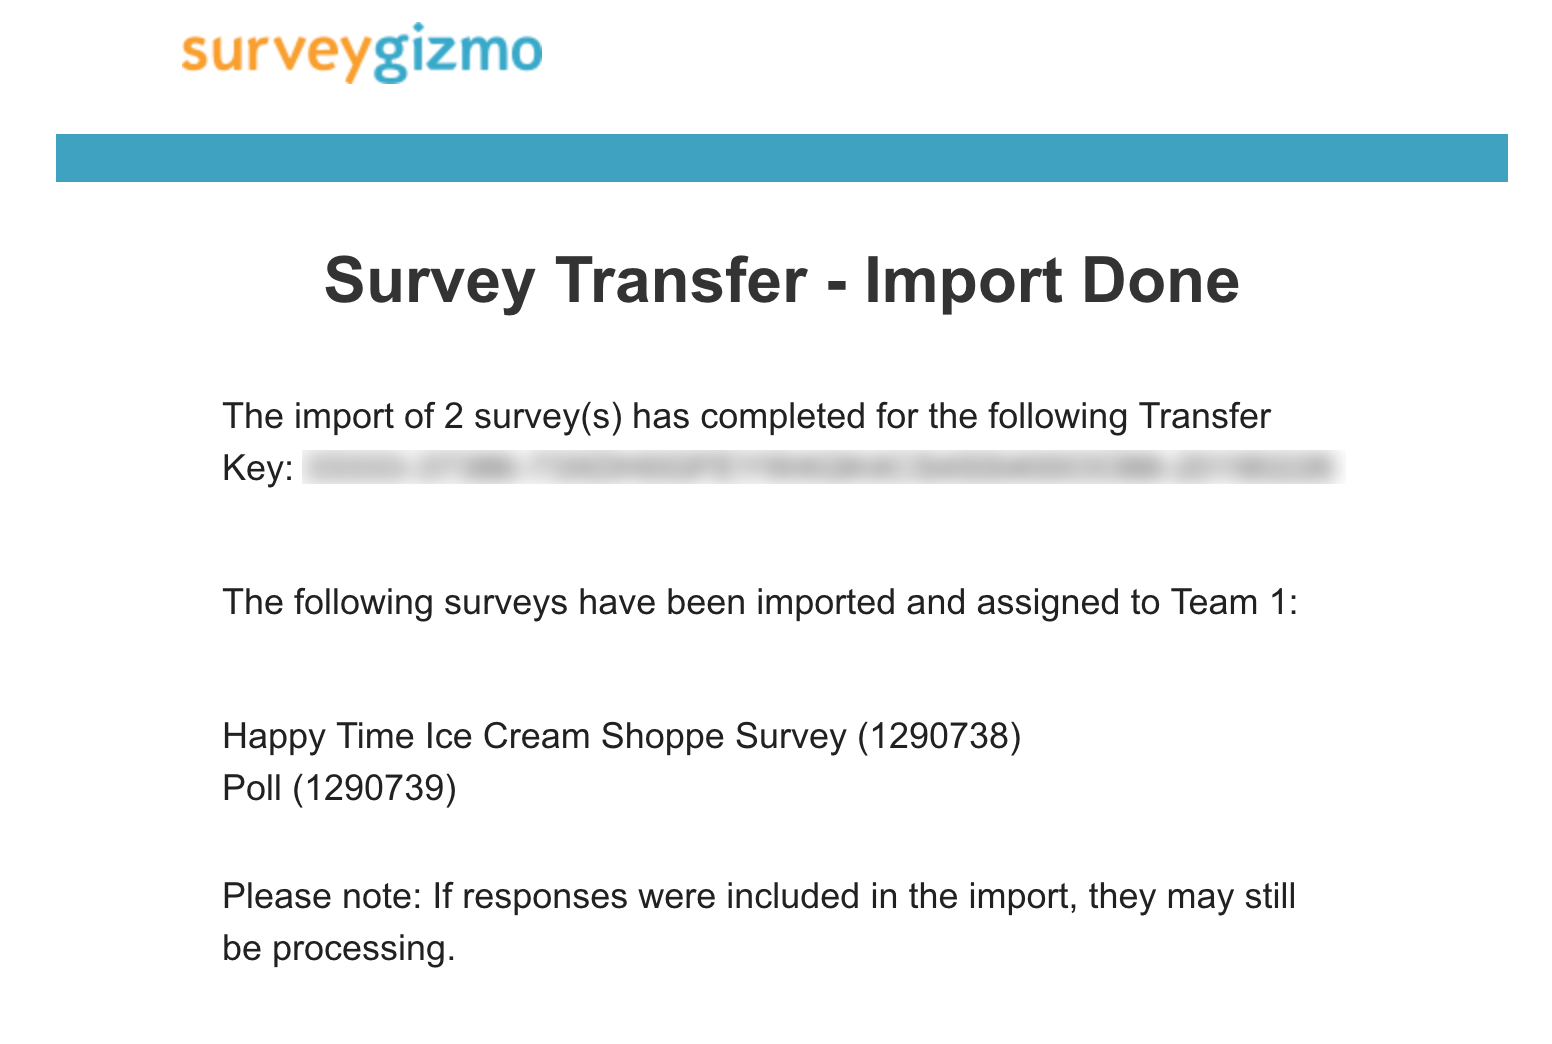 Survey Transfer: Import Done Email Message